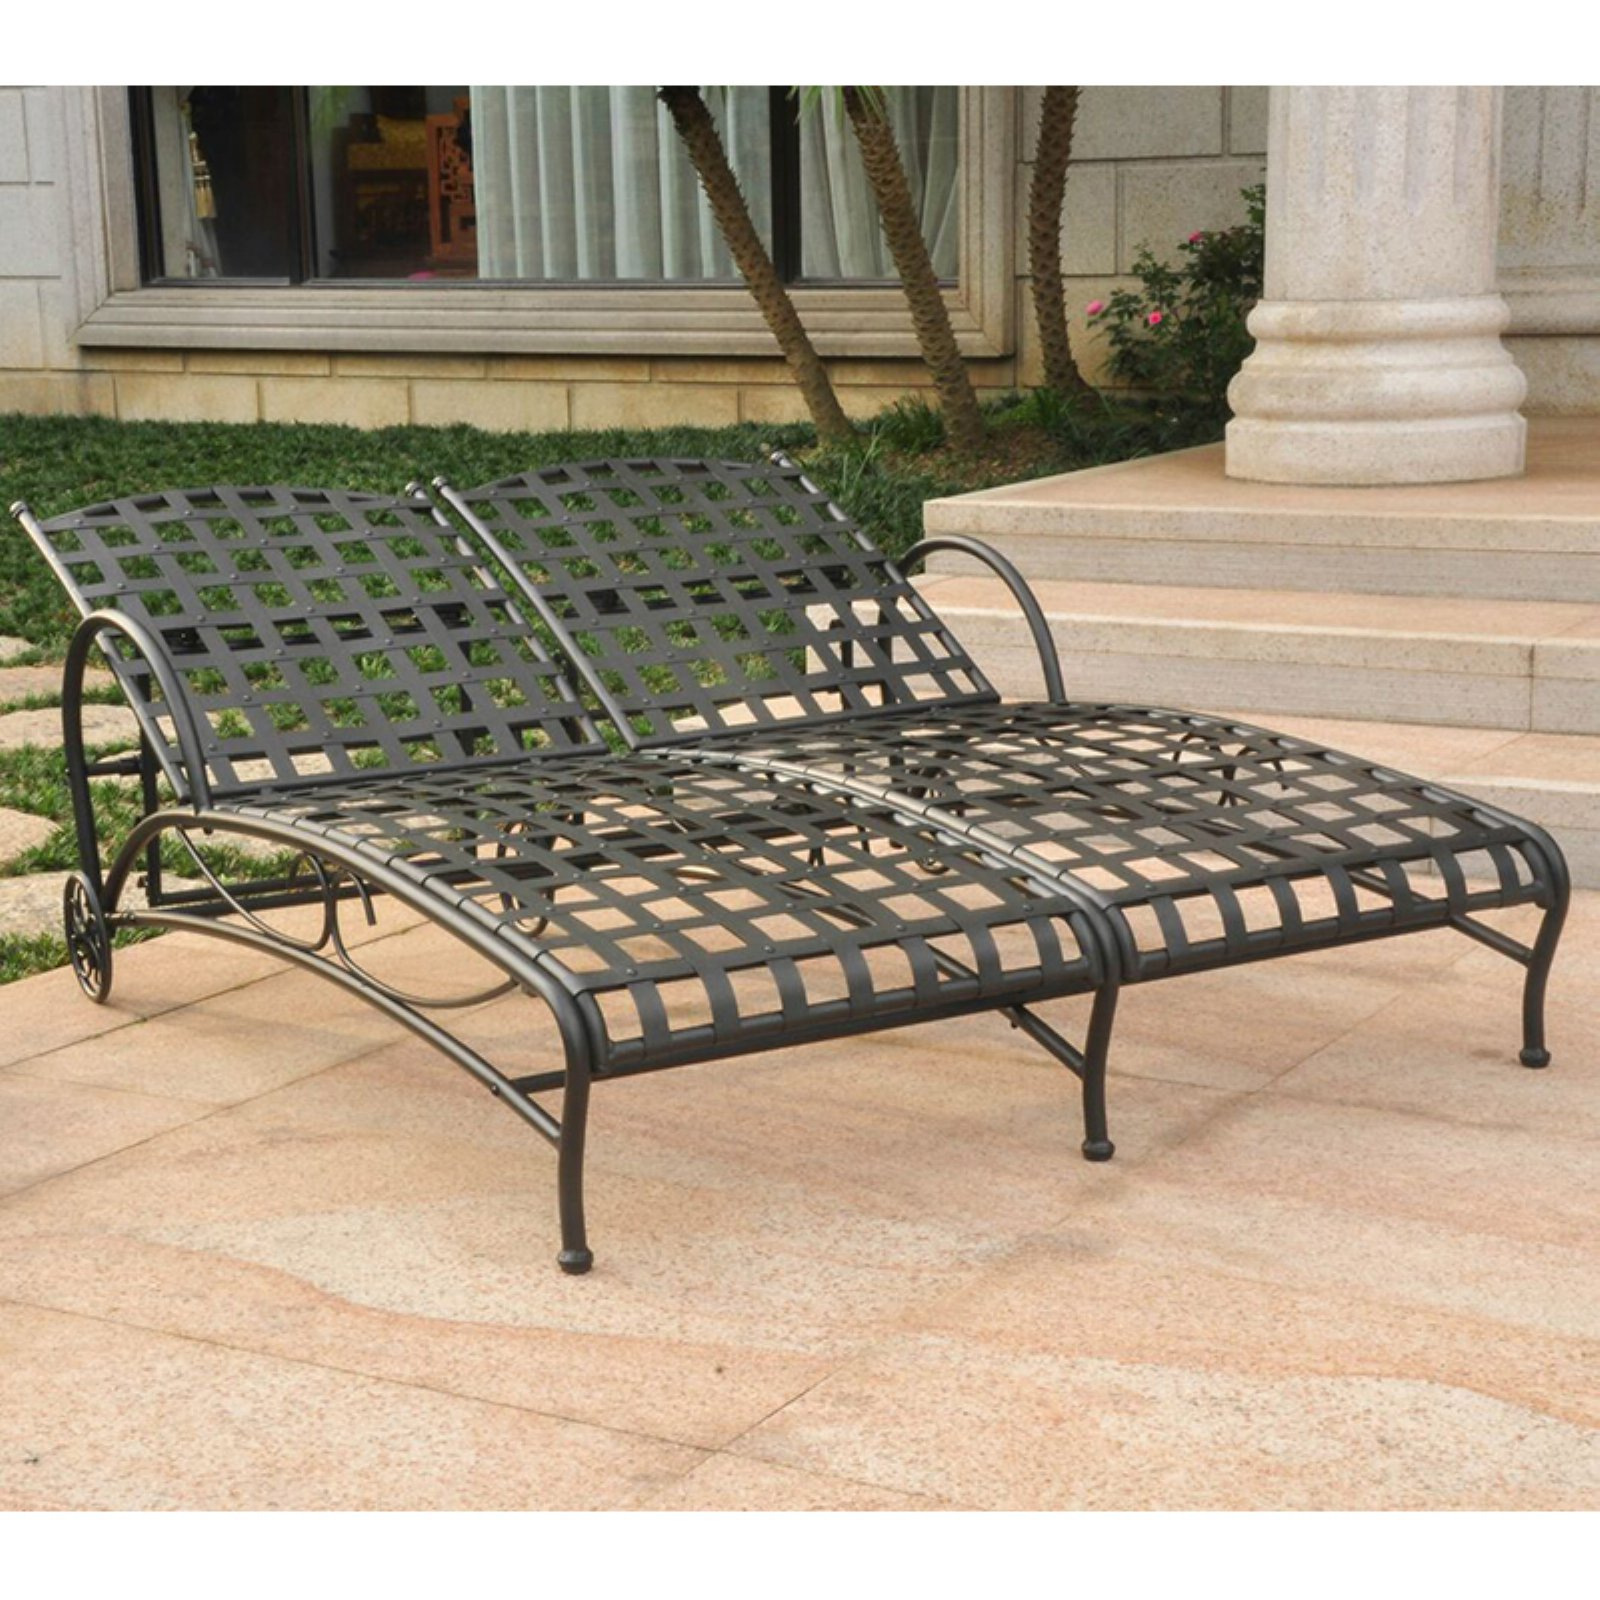 International Caravan Santa Fe Iron Metal Double Multi Position Chaise Lounge by International Caravan